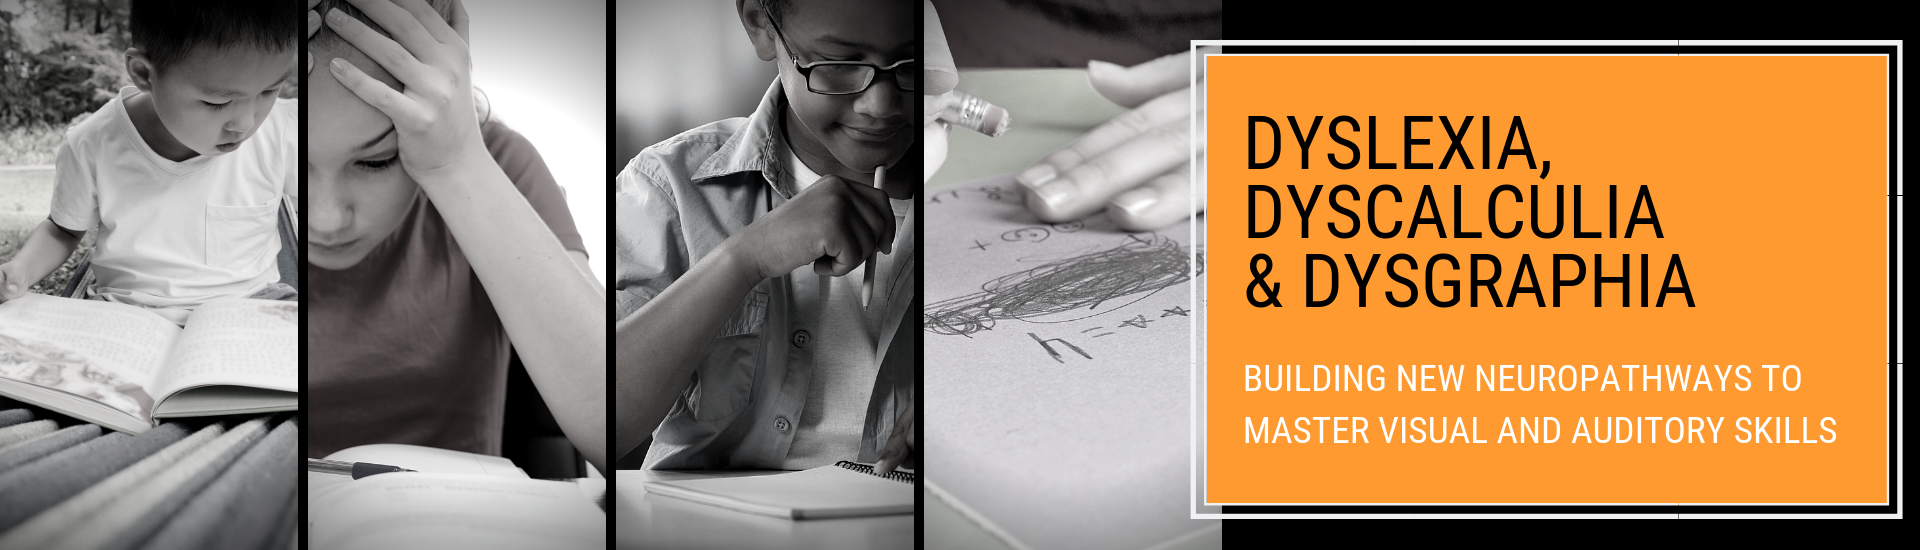 Dyslexia, Dyscalculia & Dysgraphia: Building NEW Neuropathways to Master Visual and Auditory Skills